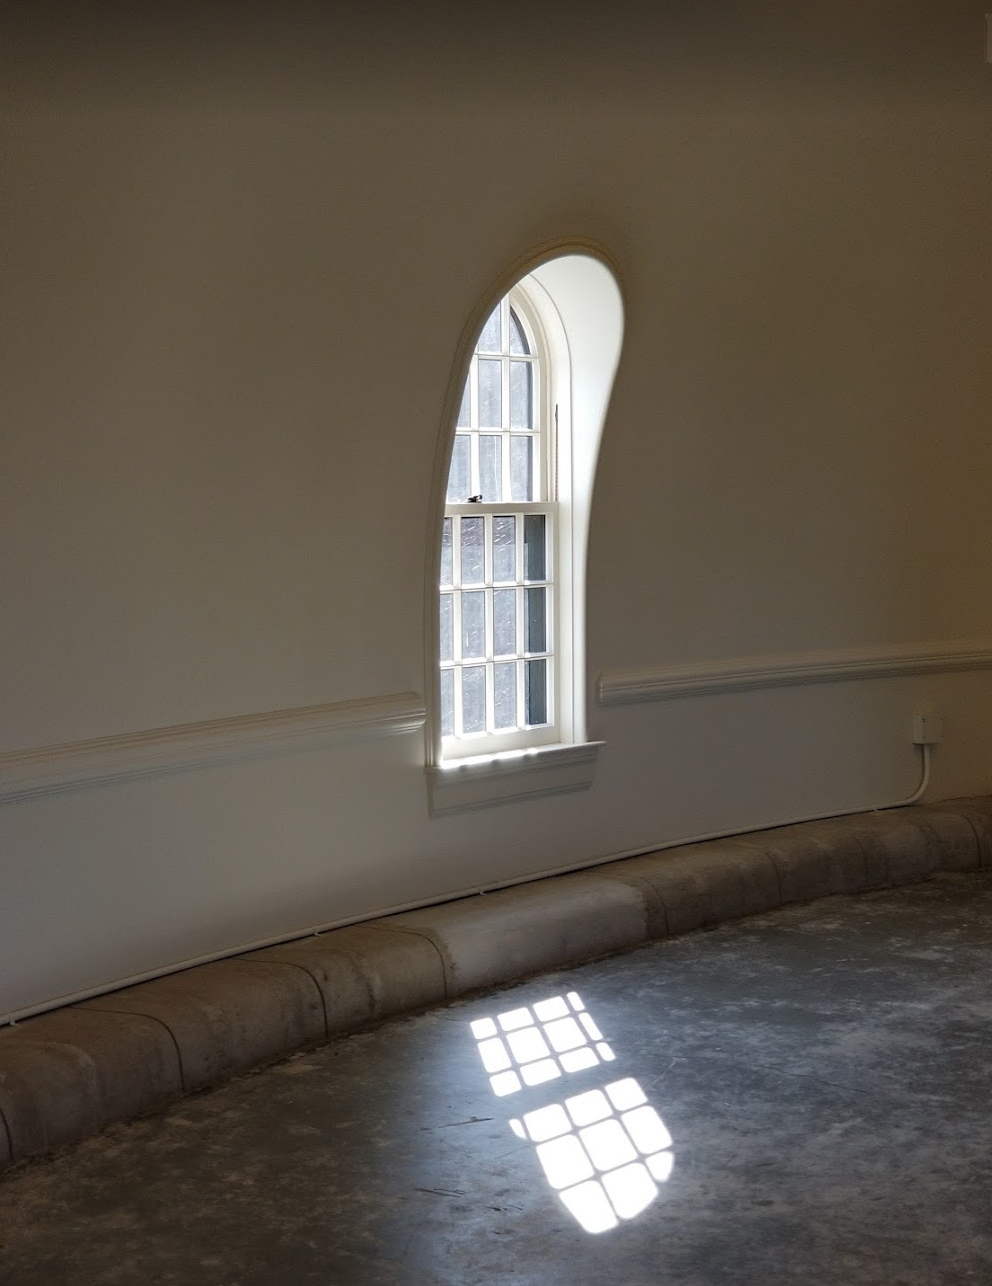 This window reminded me of The Handmaid's Tale. I love the light & simplicity is the hallway.